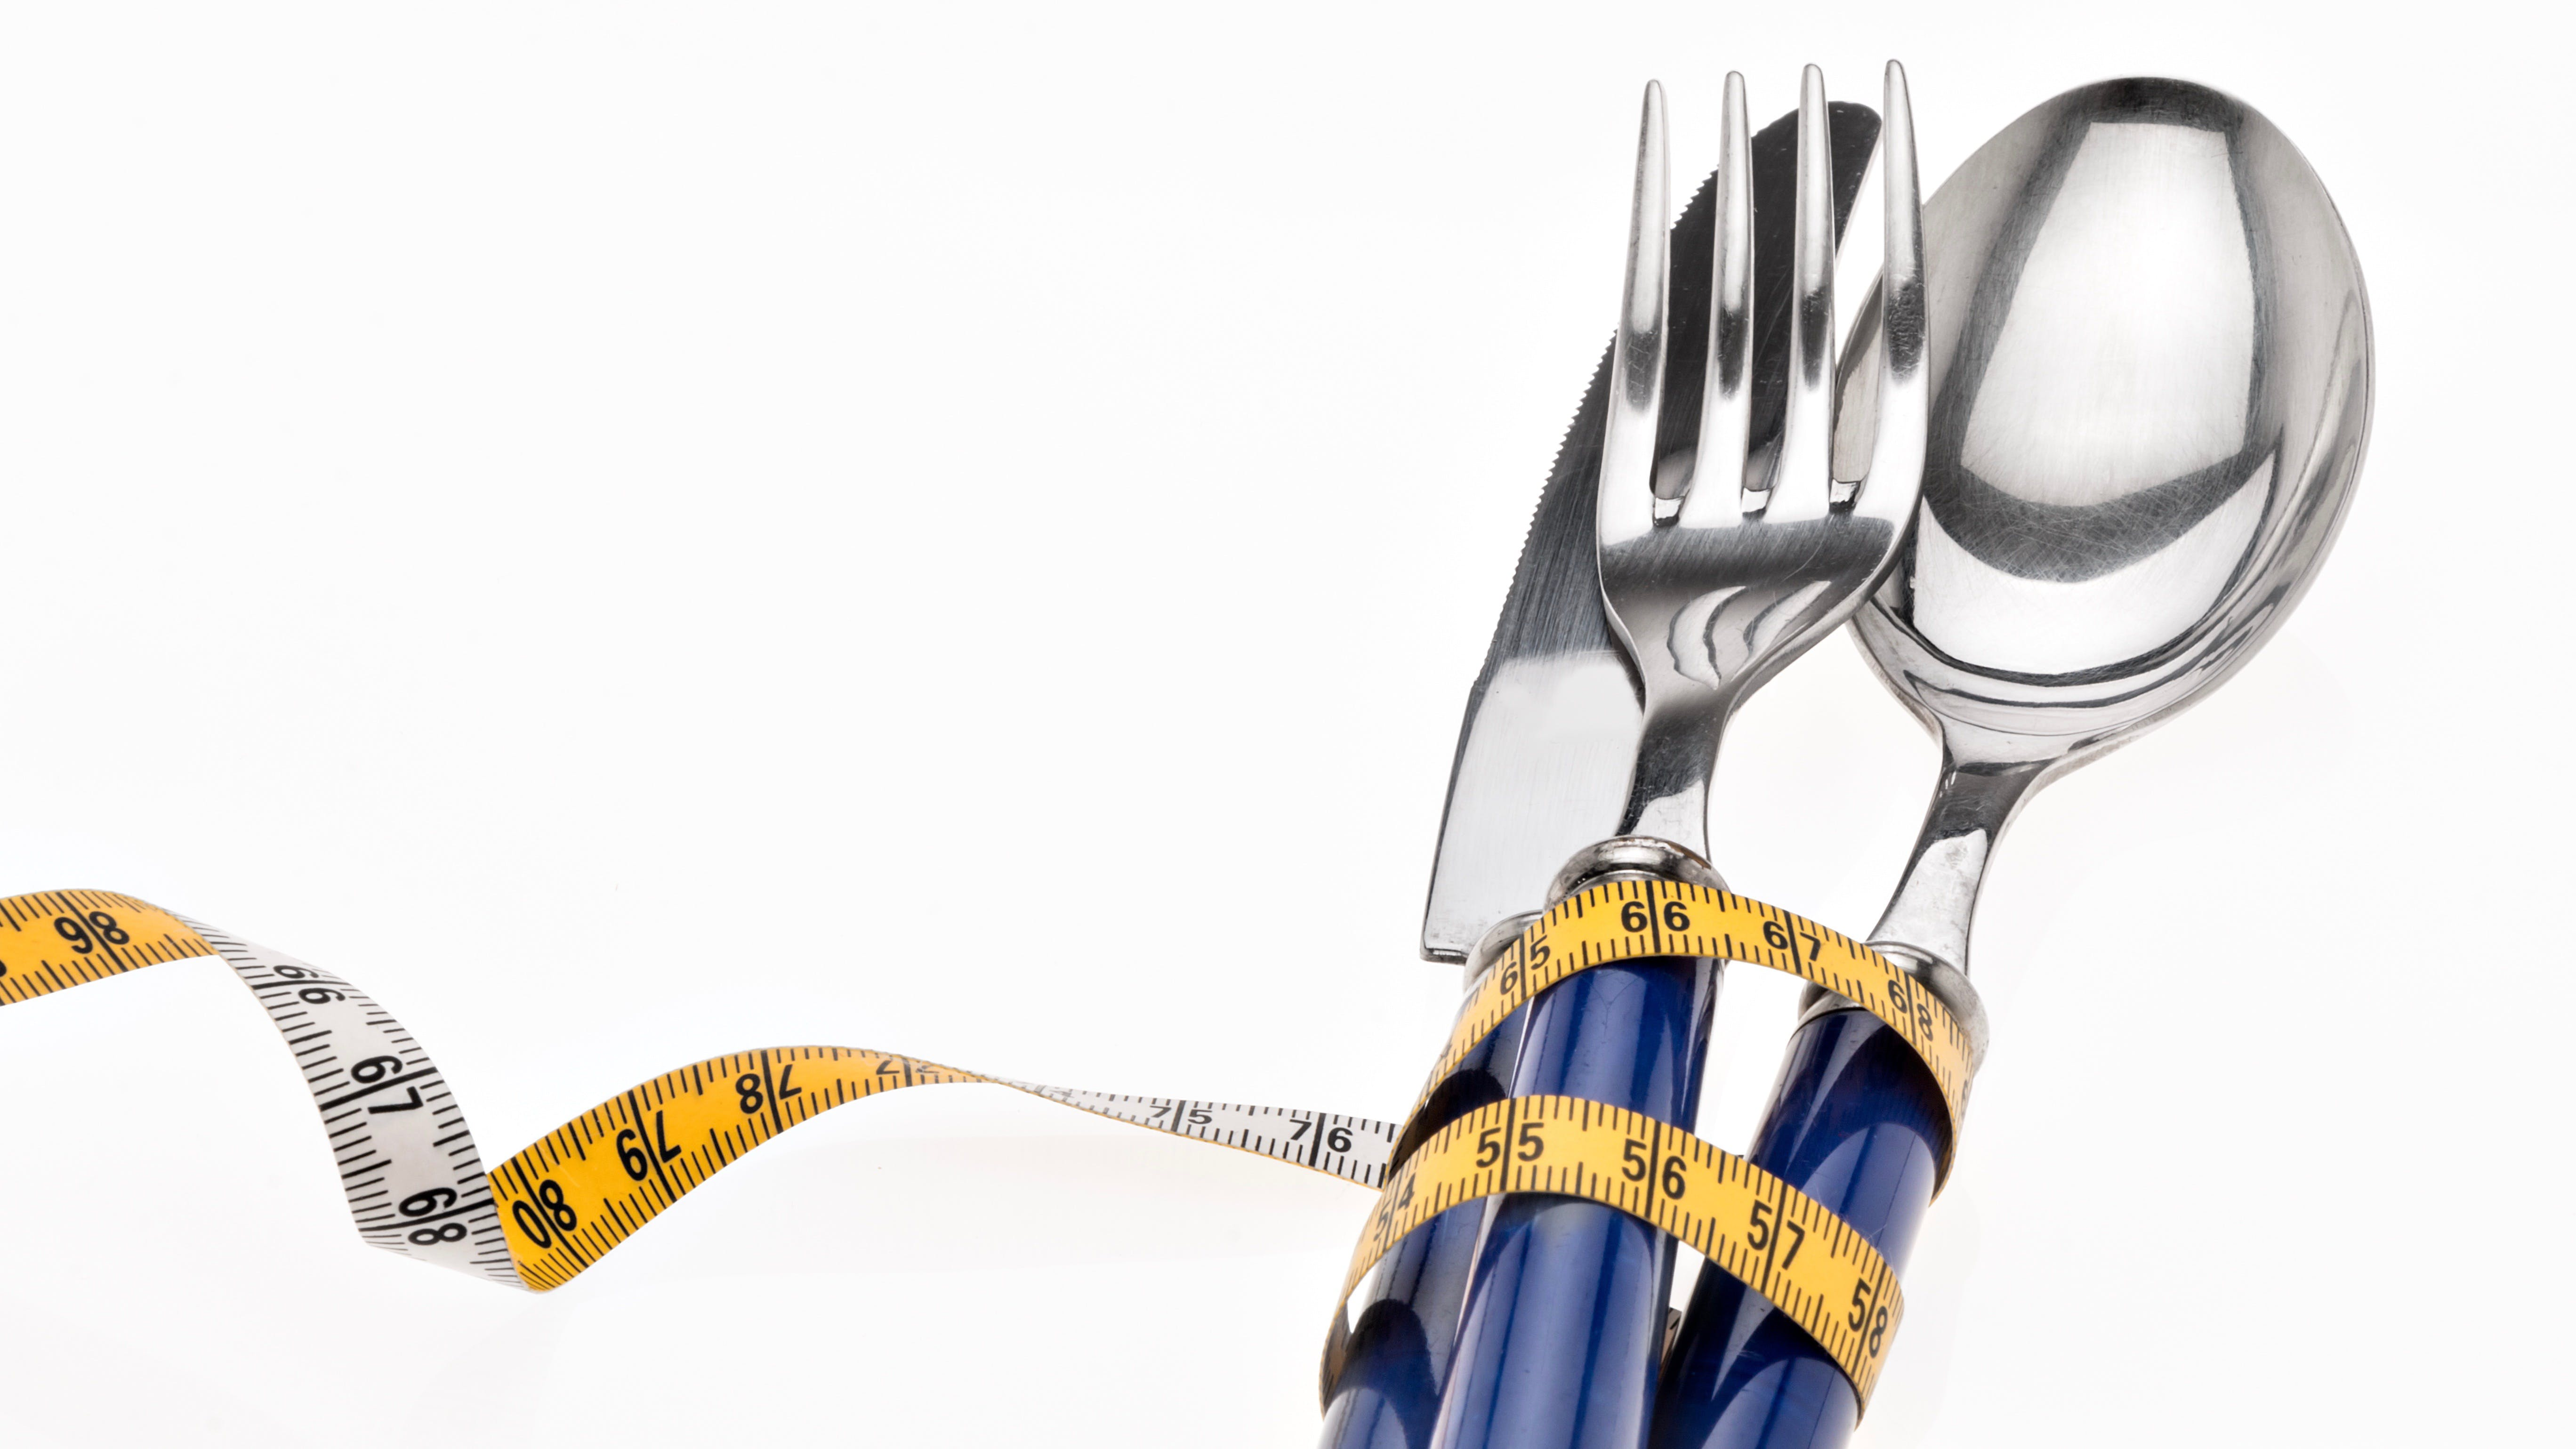 Is intermittent fasting better than chronic calorie restriction? Only if you actually do it!